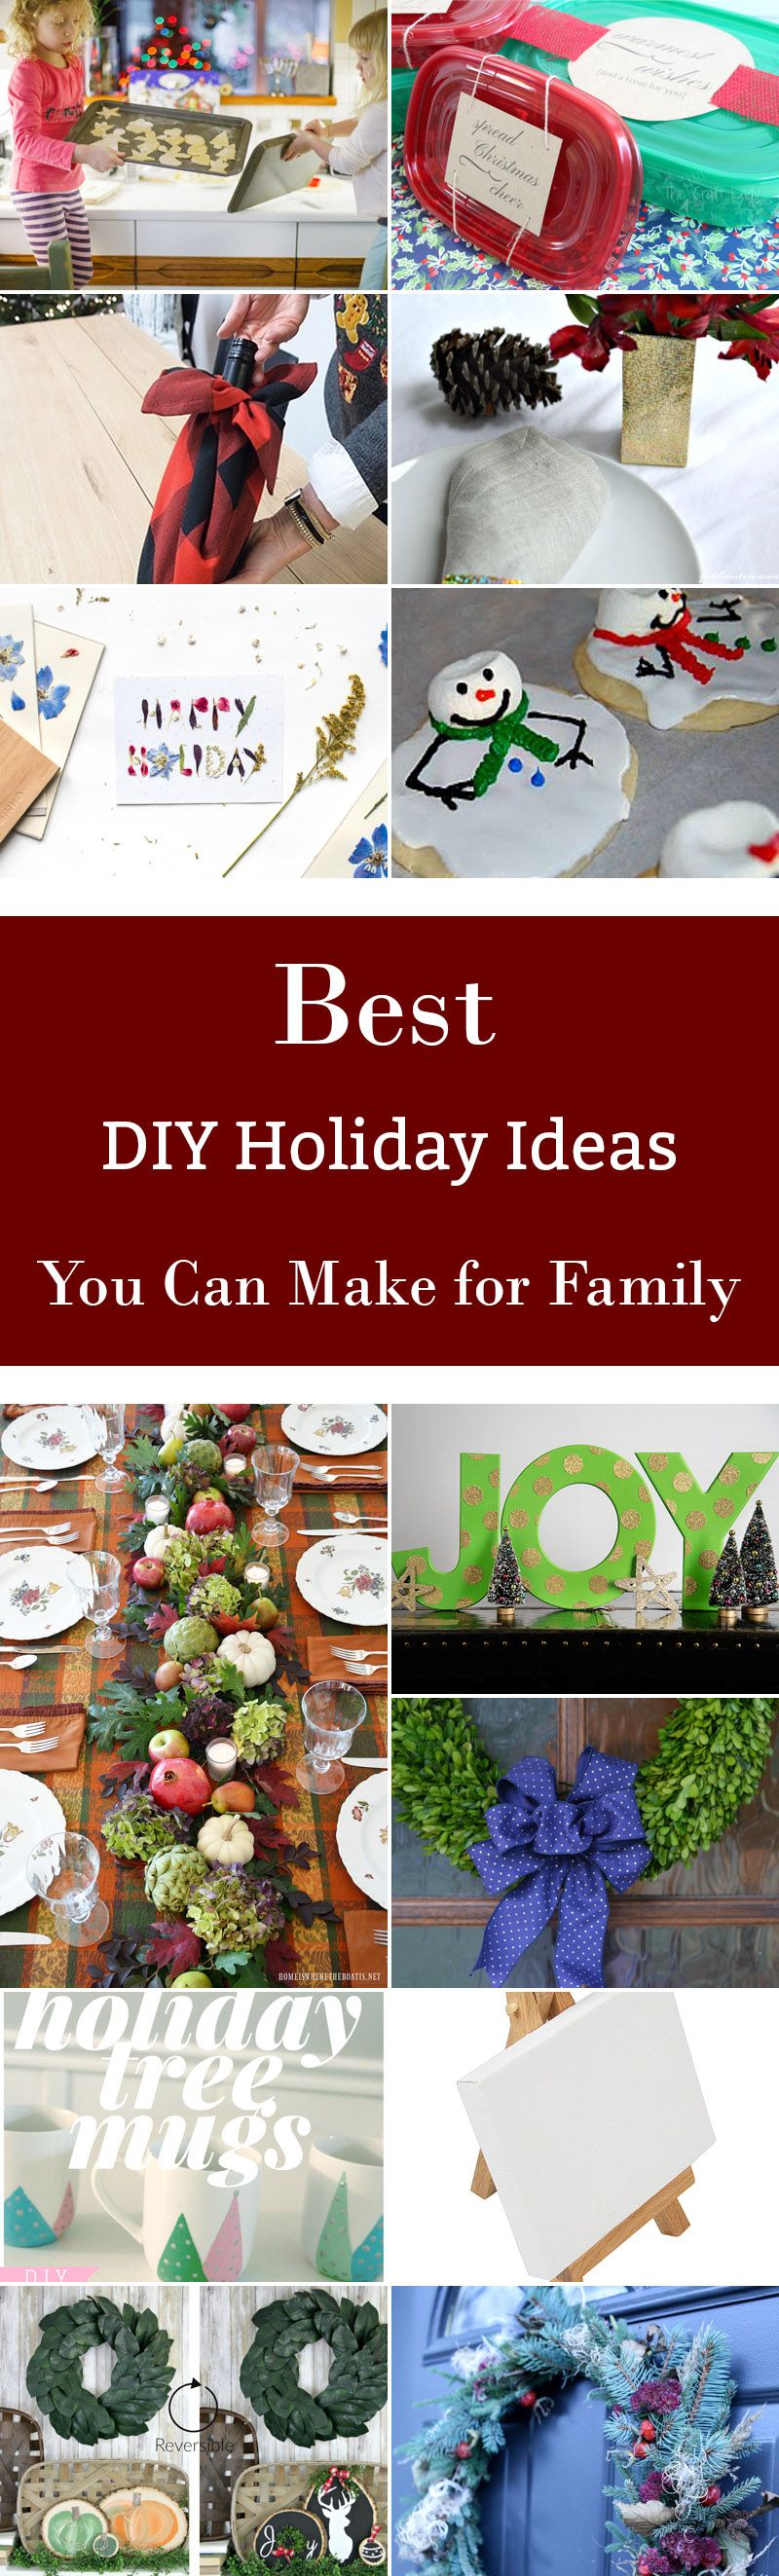 30 Best Diy Holiday Ideas You Can Make For Family